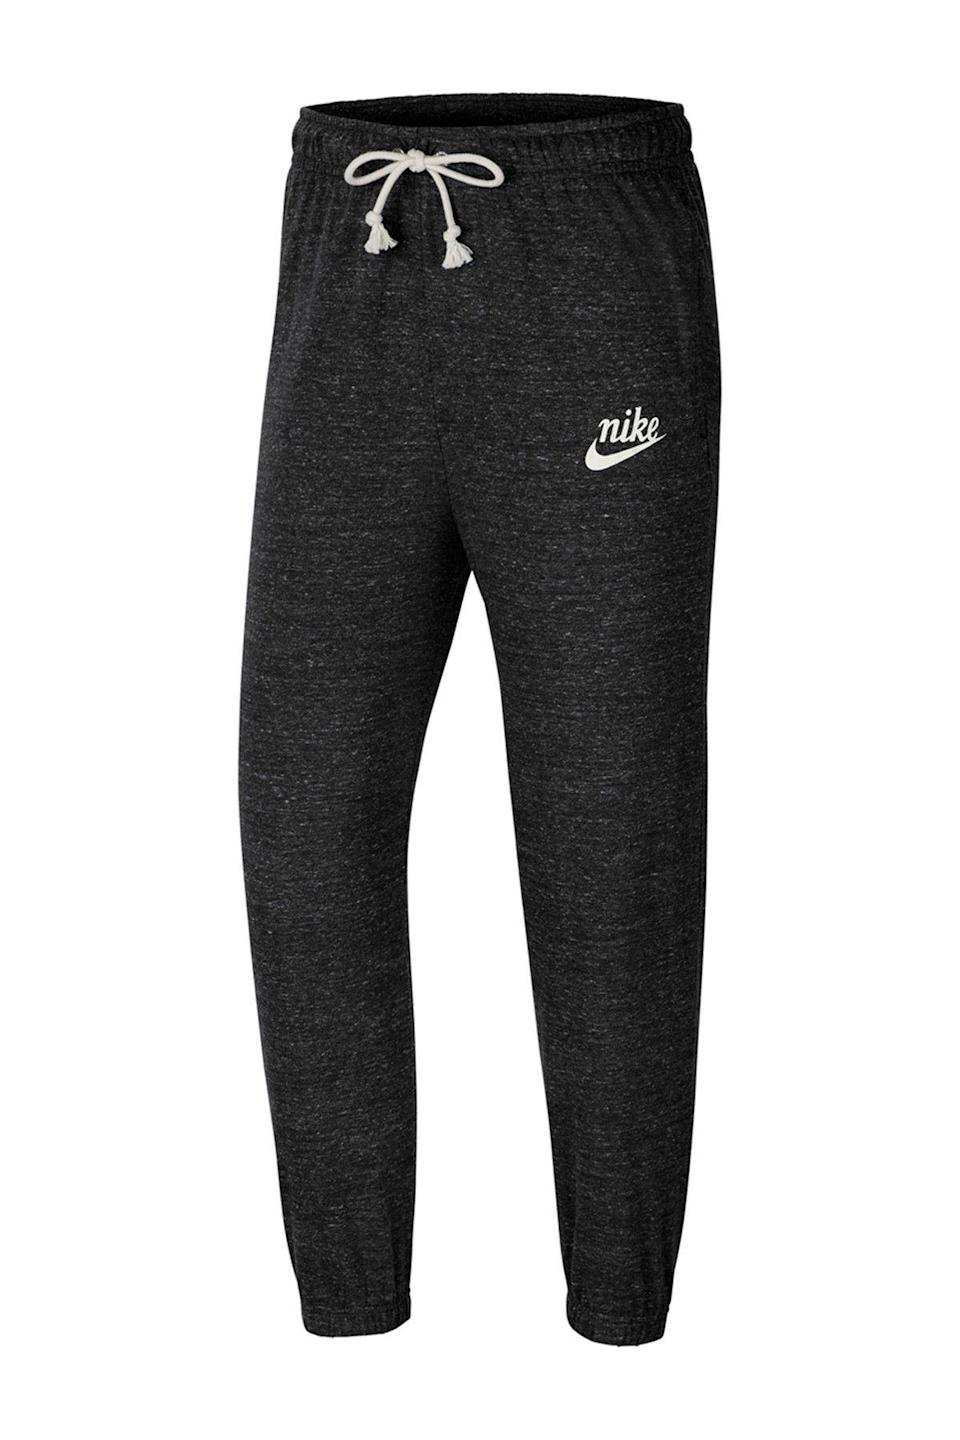 """<p><strong>Nike</strong></p><p>nordstromrack.com</p><p><a href=""""https://go.redirectingat.com?id=74968X1596630&url=https%3A%2F%2Fwww.nordstromrack.com%2Fshop%2Fproduct%2F2939174&sref=https%3A%2F%2Fwww.womenshealthmag.com%2Fstyle%2Fg33534500%2Fnordstrom-rack-nike-sale%2F"""" rel=""""nofollow noopener"""" target=""""_blank"""" data-ylk=""""slk:Shop Now"""" class=""""link rapid-noclick-resp"""">Shop Now</a></p><p><del>$45</del><strong><br>$33.97</strong></p><p>Or, if you want to get a head-start on your cold-weather shopping, go ahead and add this pair to your growing sweatpants rotation.</p>"""